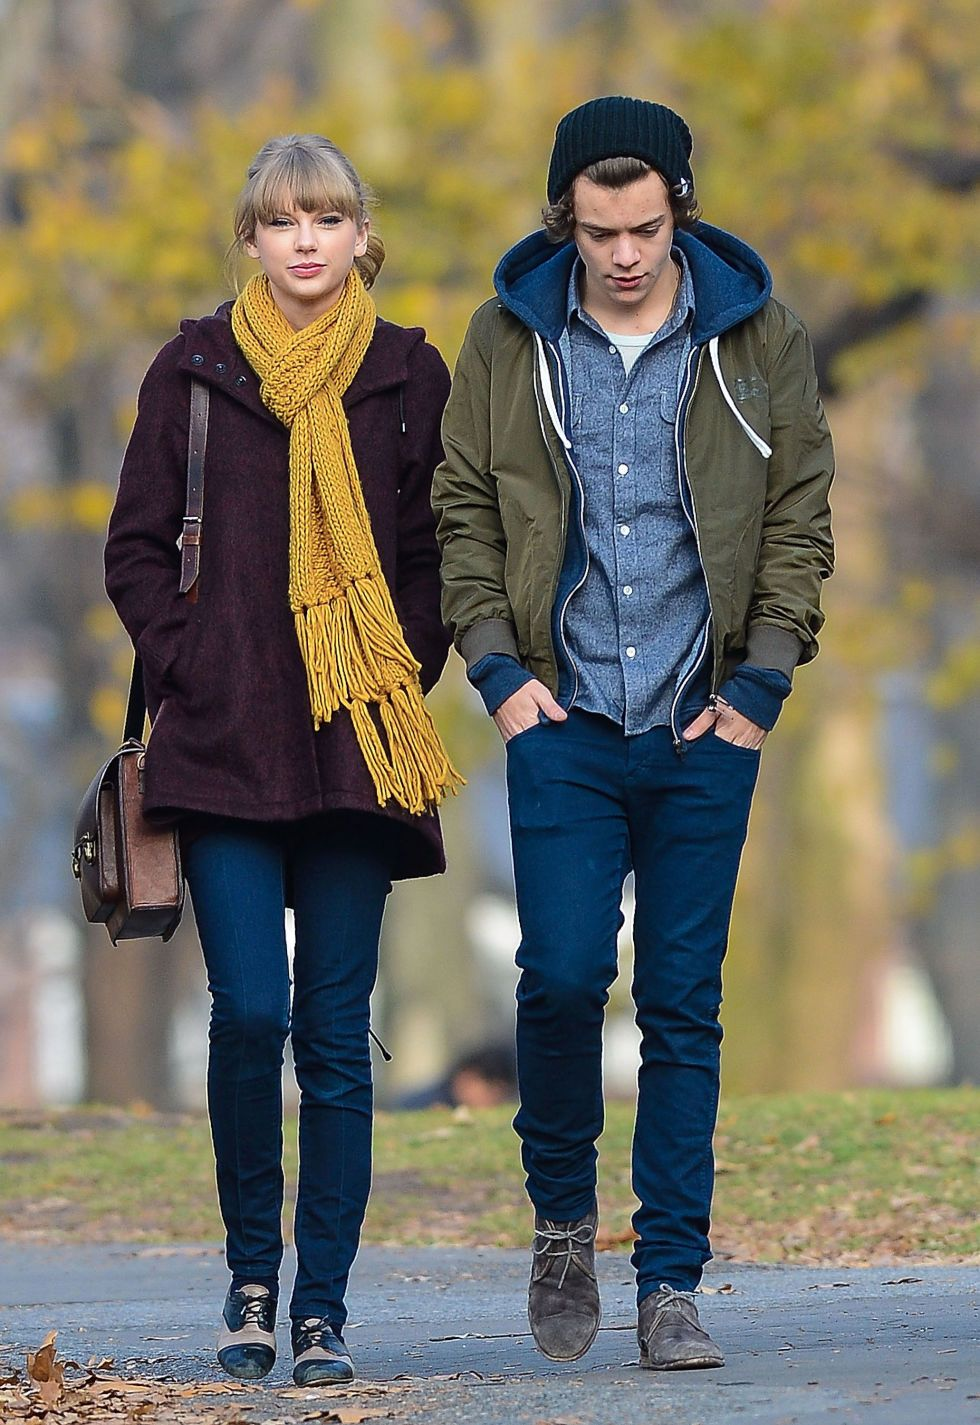 harry styles and taylor swift dating history